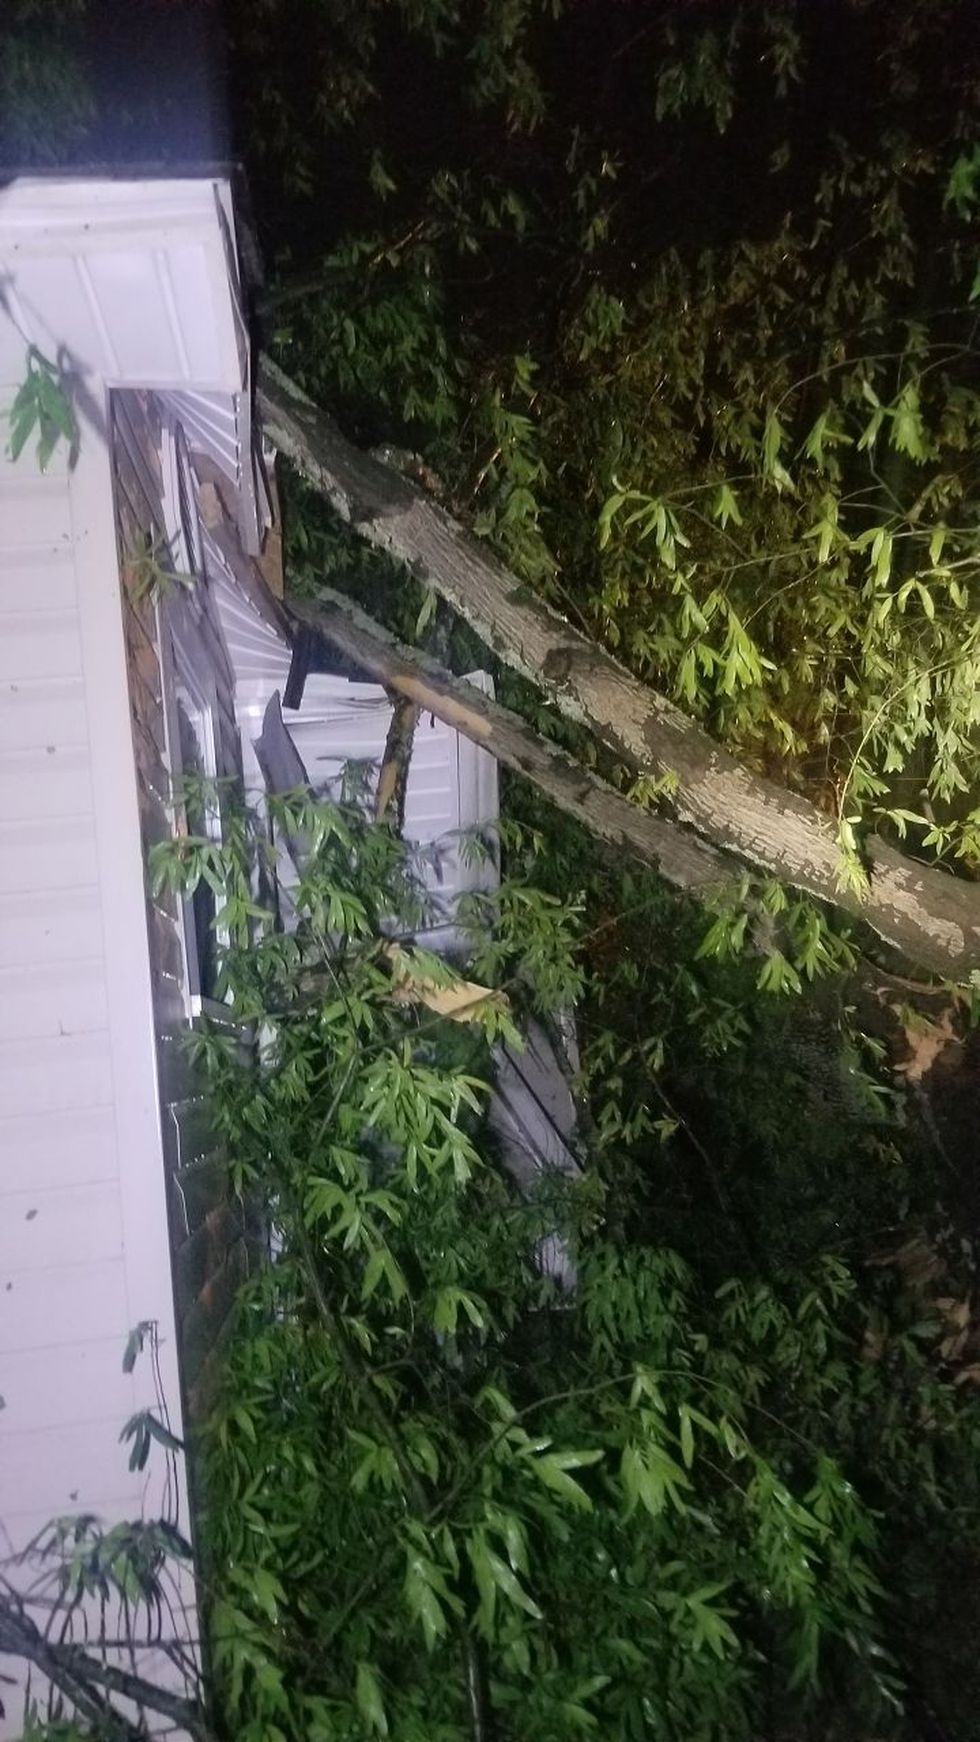 KSLA News 12 viewer Antwion Collins shared this image of a tree downed in Texarkana during...